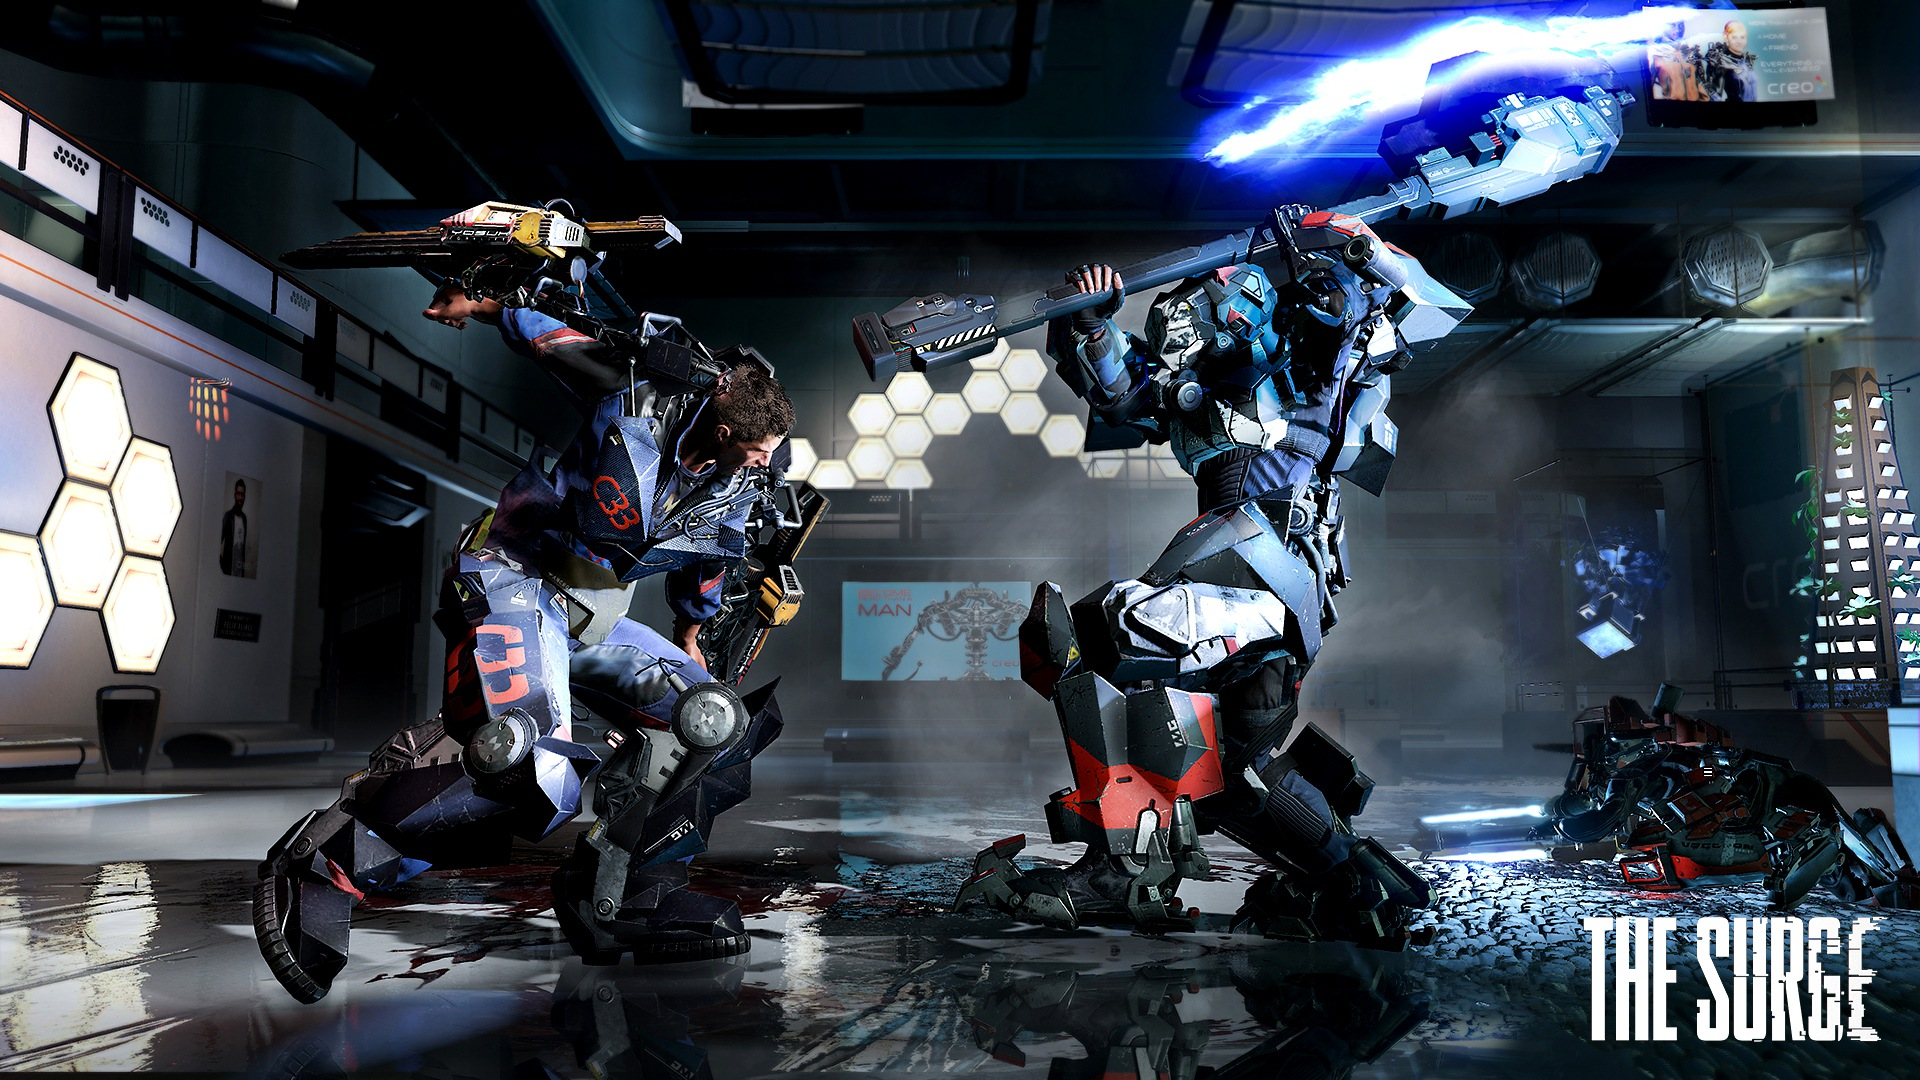 Cool-The-Surge-Fighting-Game-Sci-Fi-Action-1920x1080-wallpaper-wp3404203